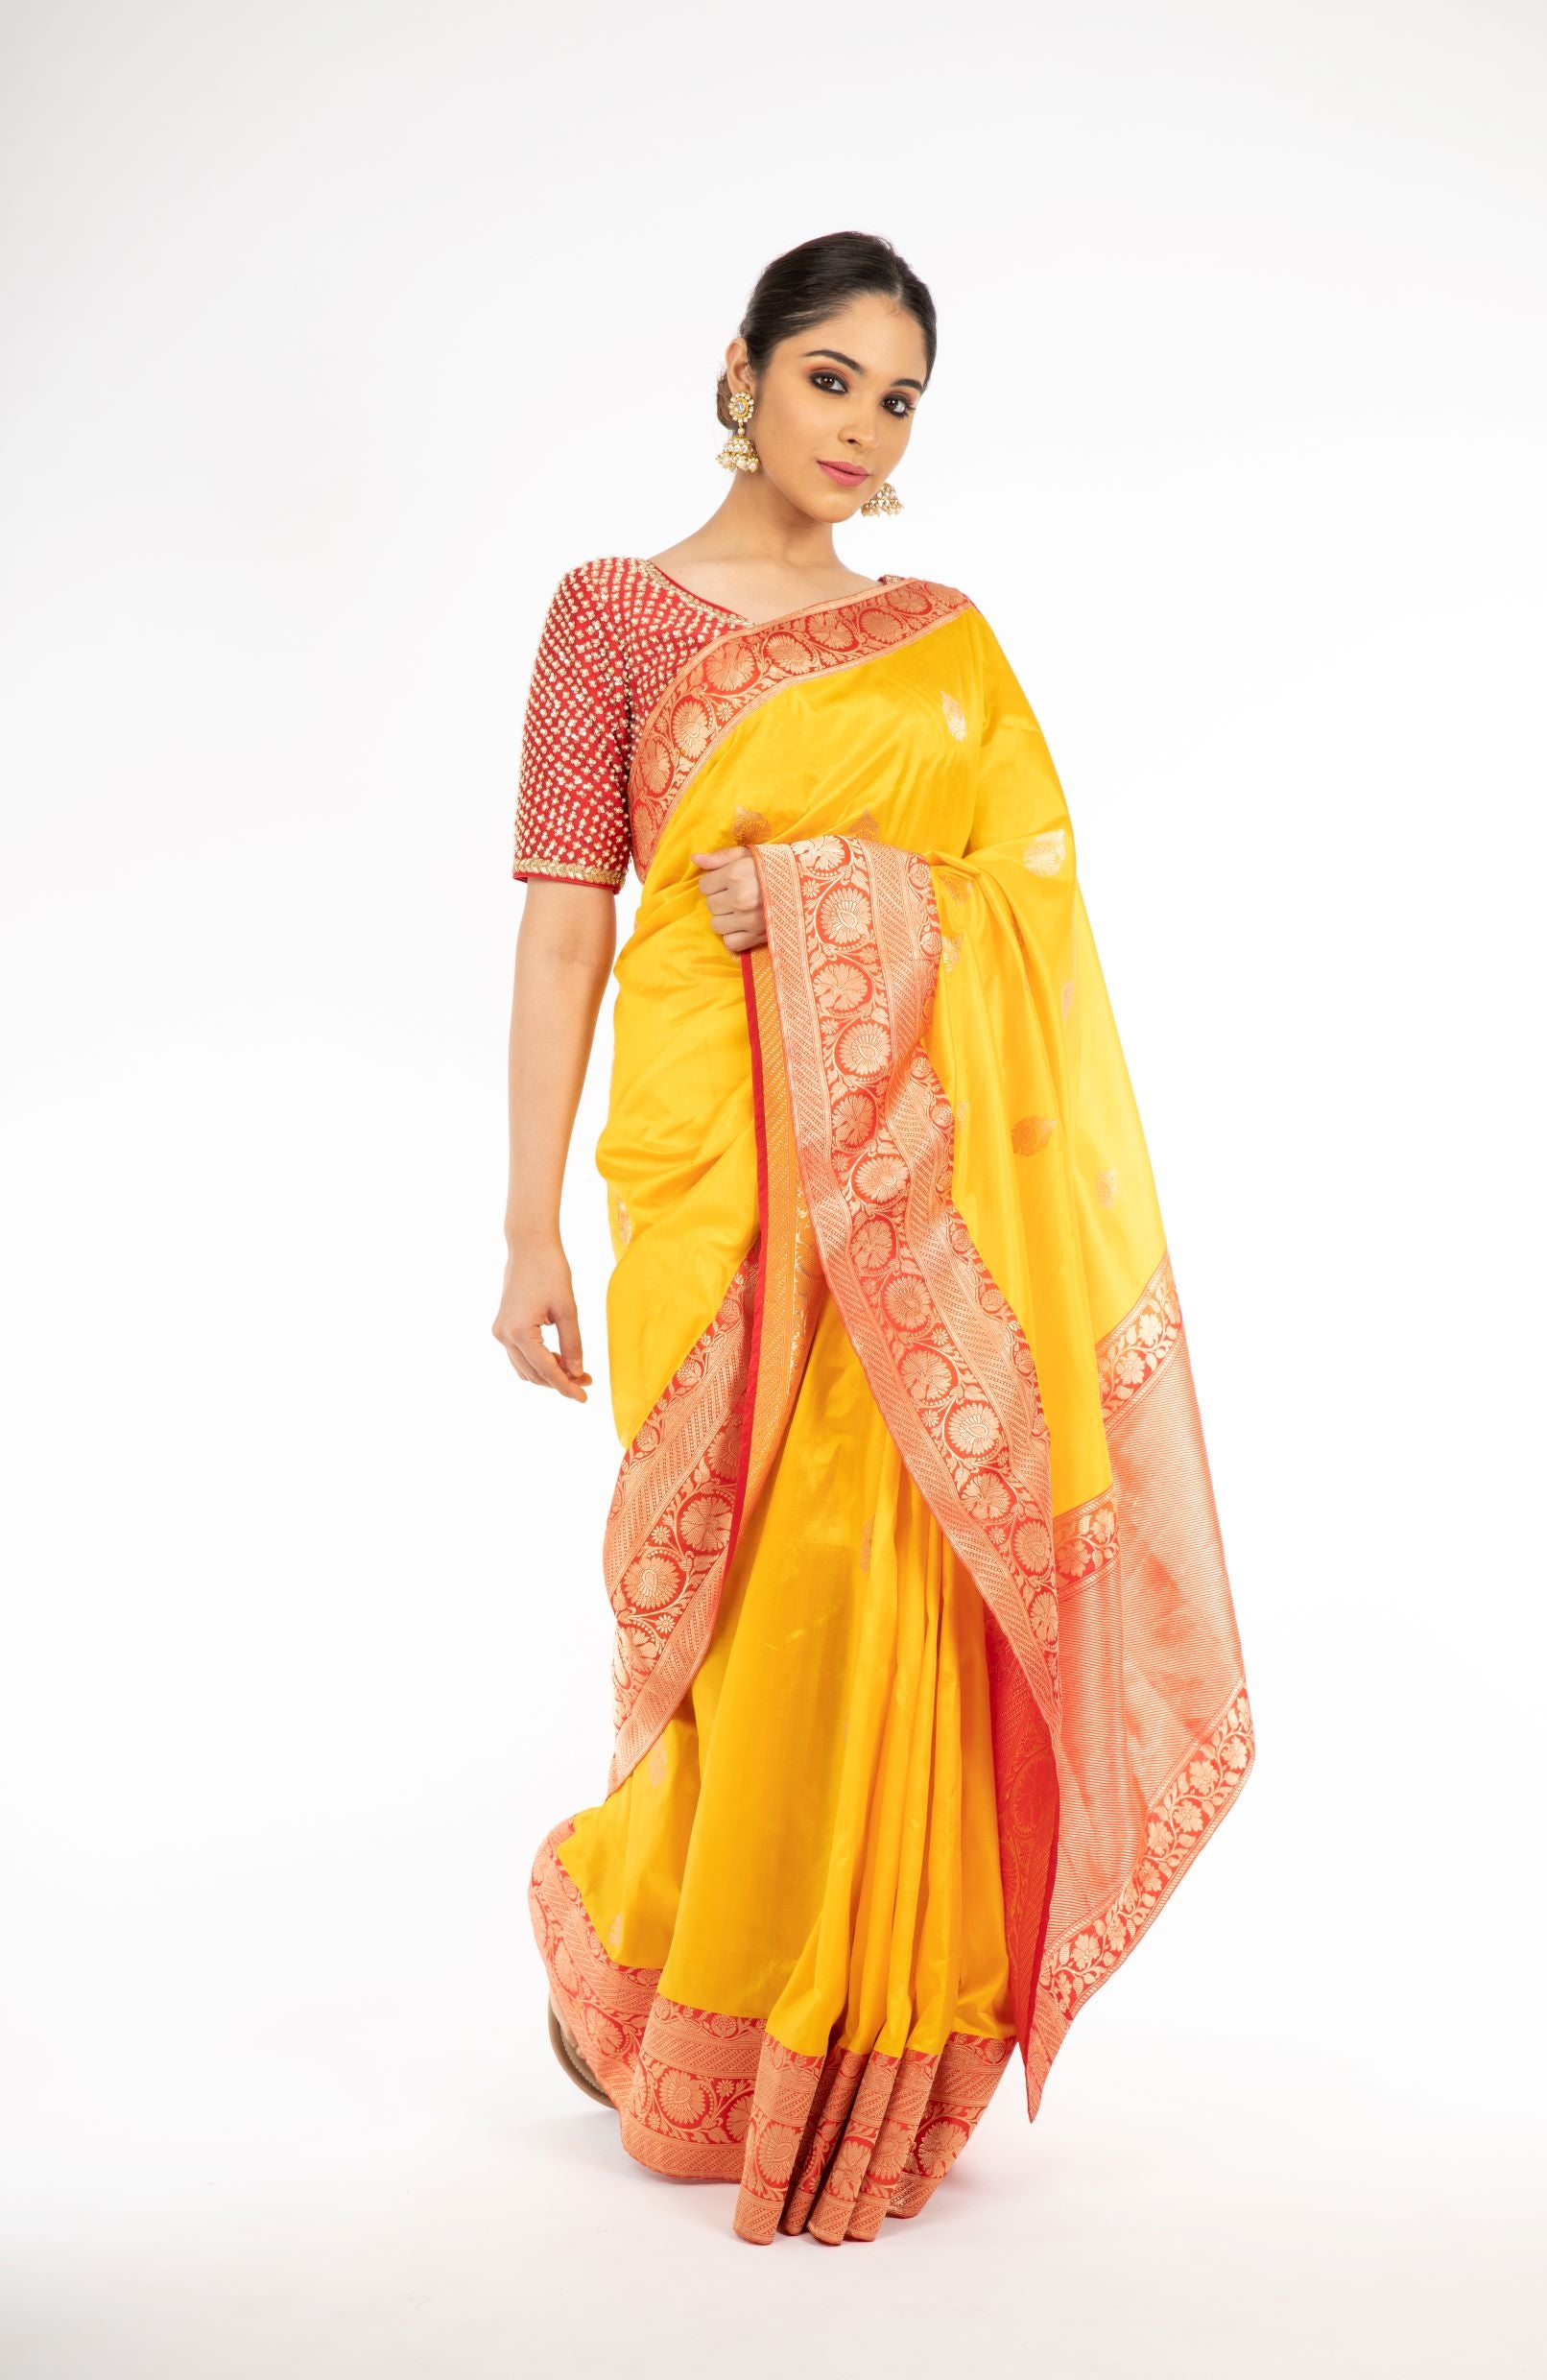 Engrossing Yellow and Red Color Handloom Banarasi Silk Saree